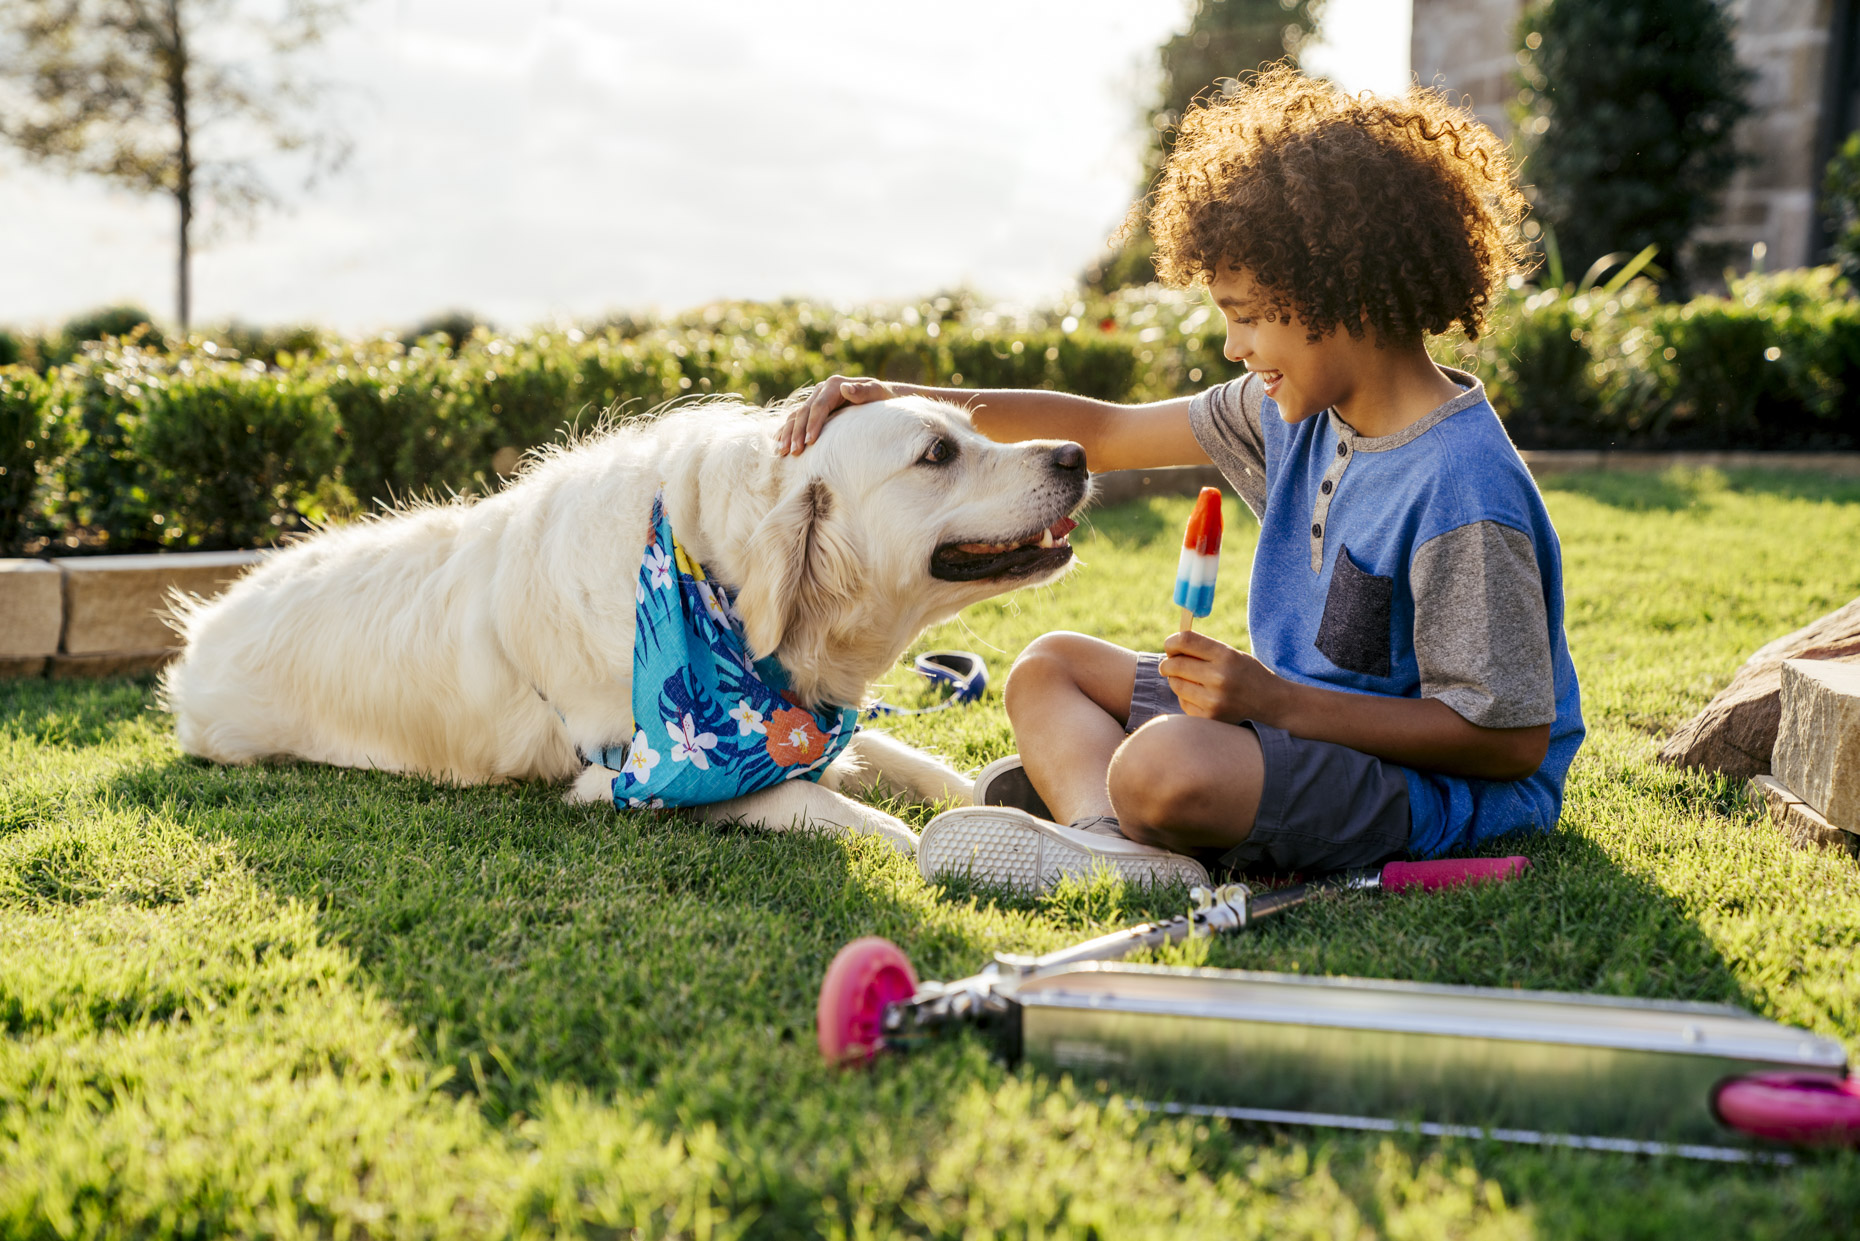 Boy sitting in yard petting dog and eating popsicle